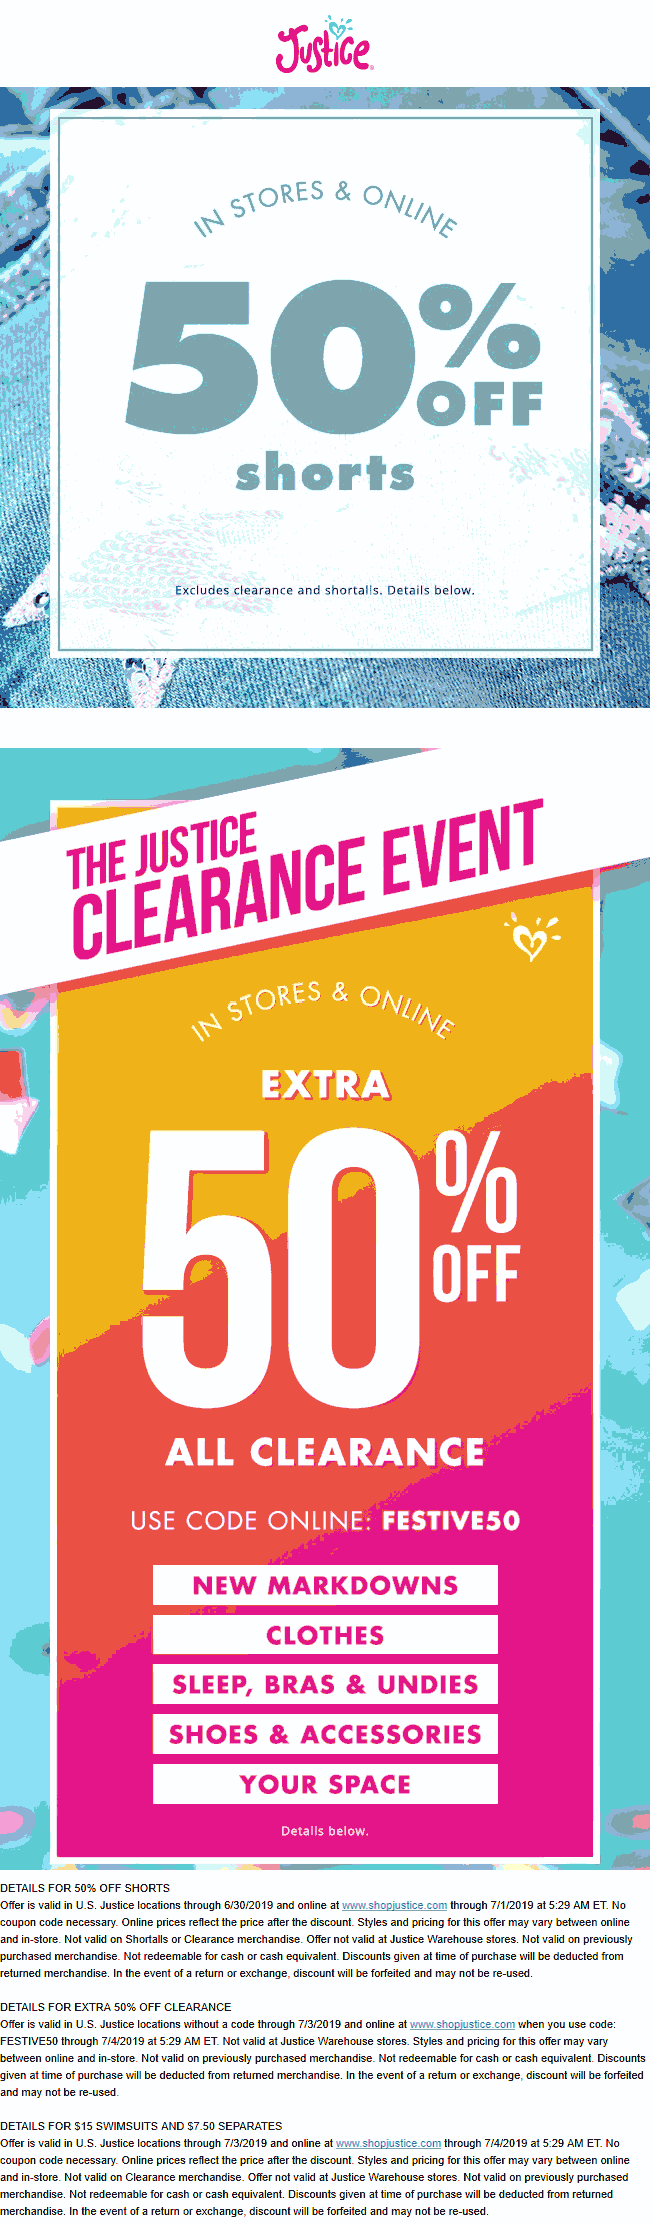 Justice Coupon September 2019 50% off shorts & clearance at Justice, or online via promo code FESTIVE50